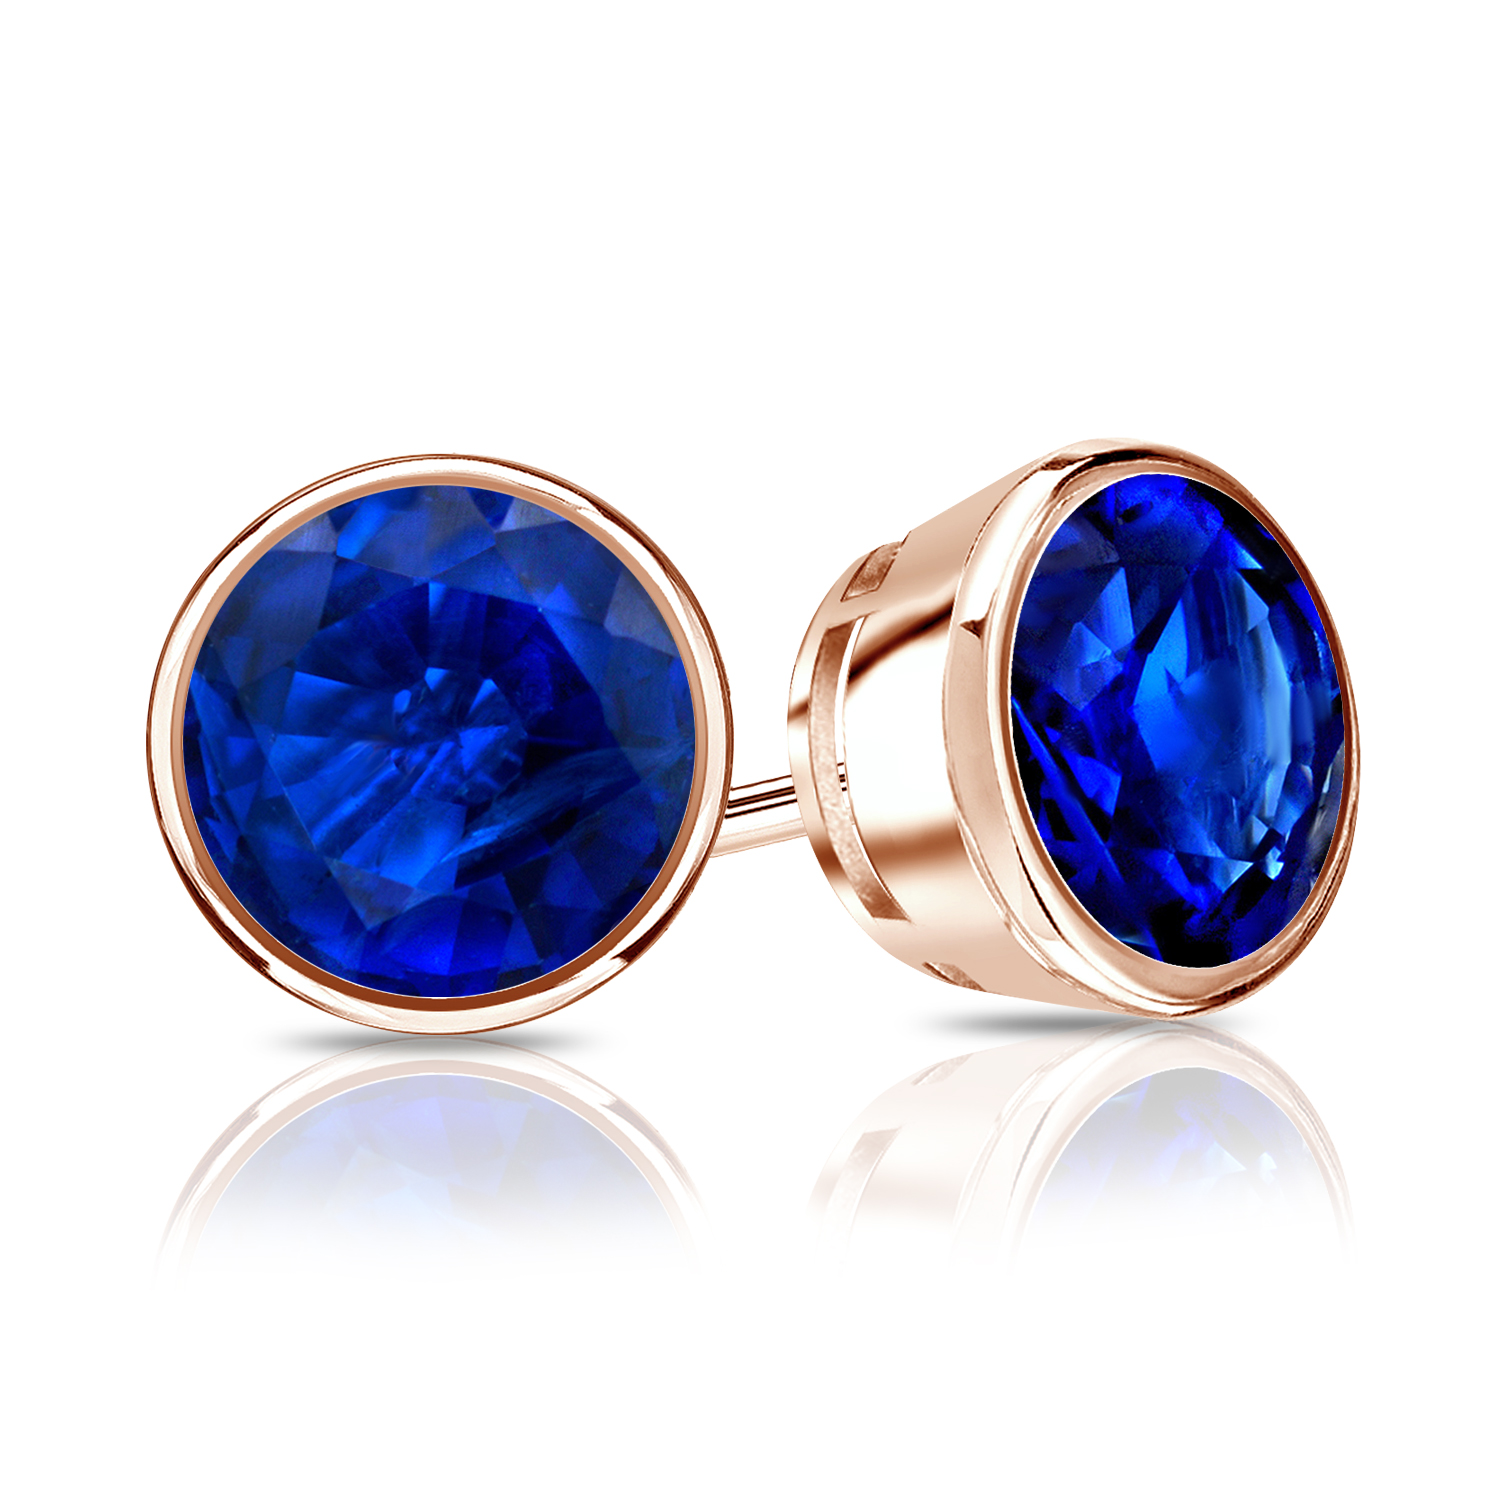 Certified 0.75 cttw Round Blue Sapphire Gemstone Stud Earrings in 14k Rose Gold Bezel (Blue, AAA)